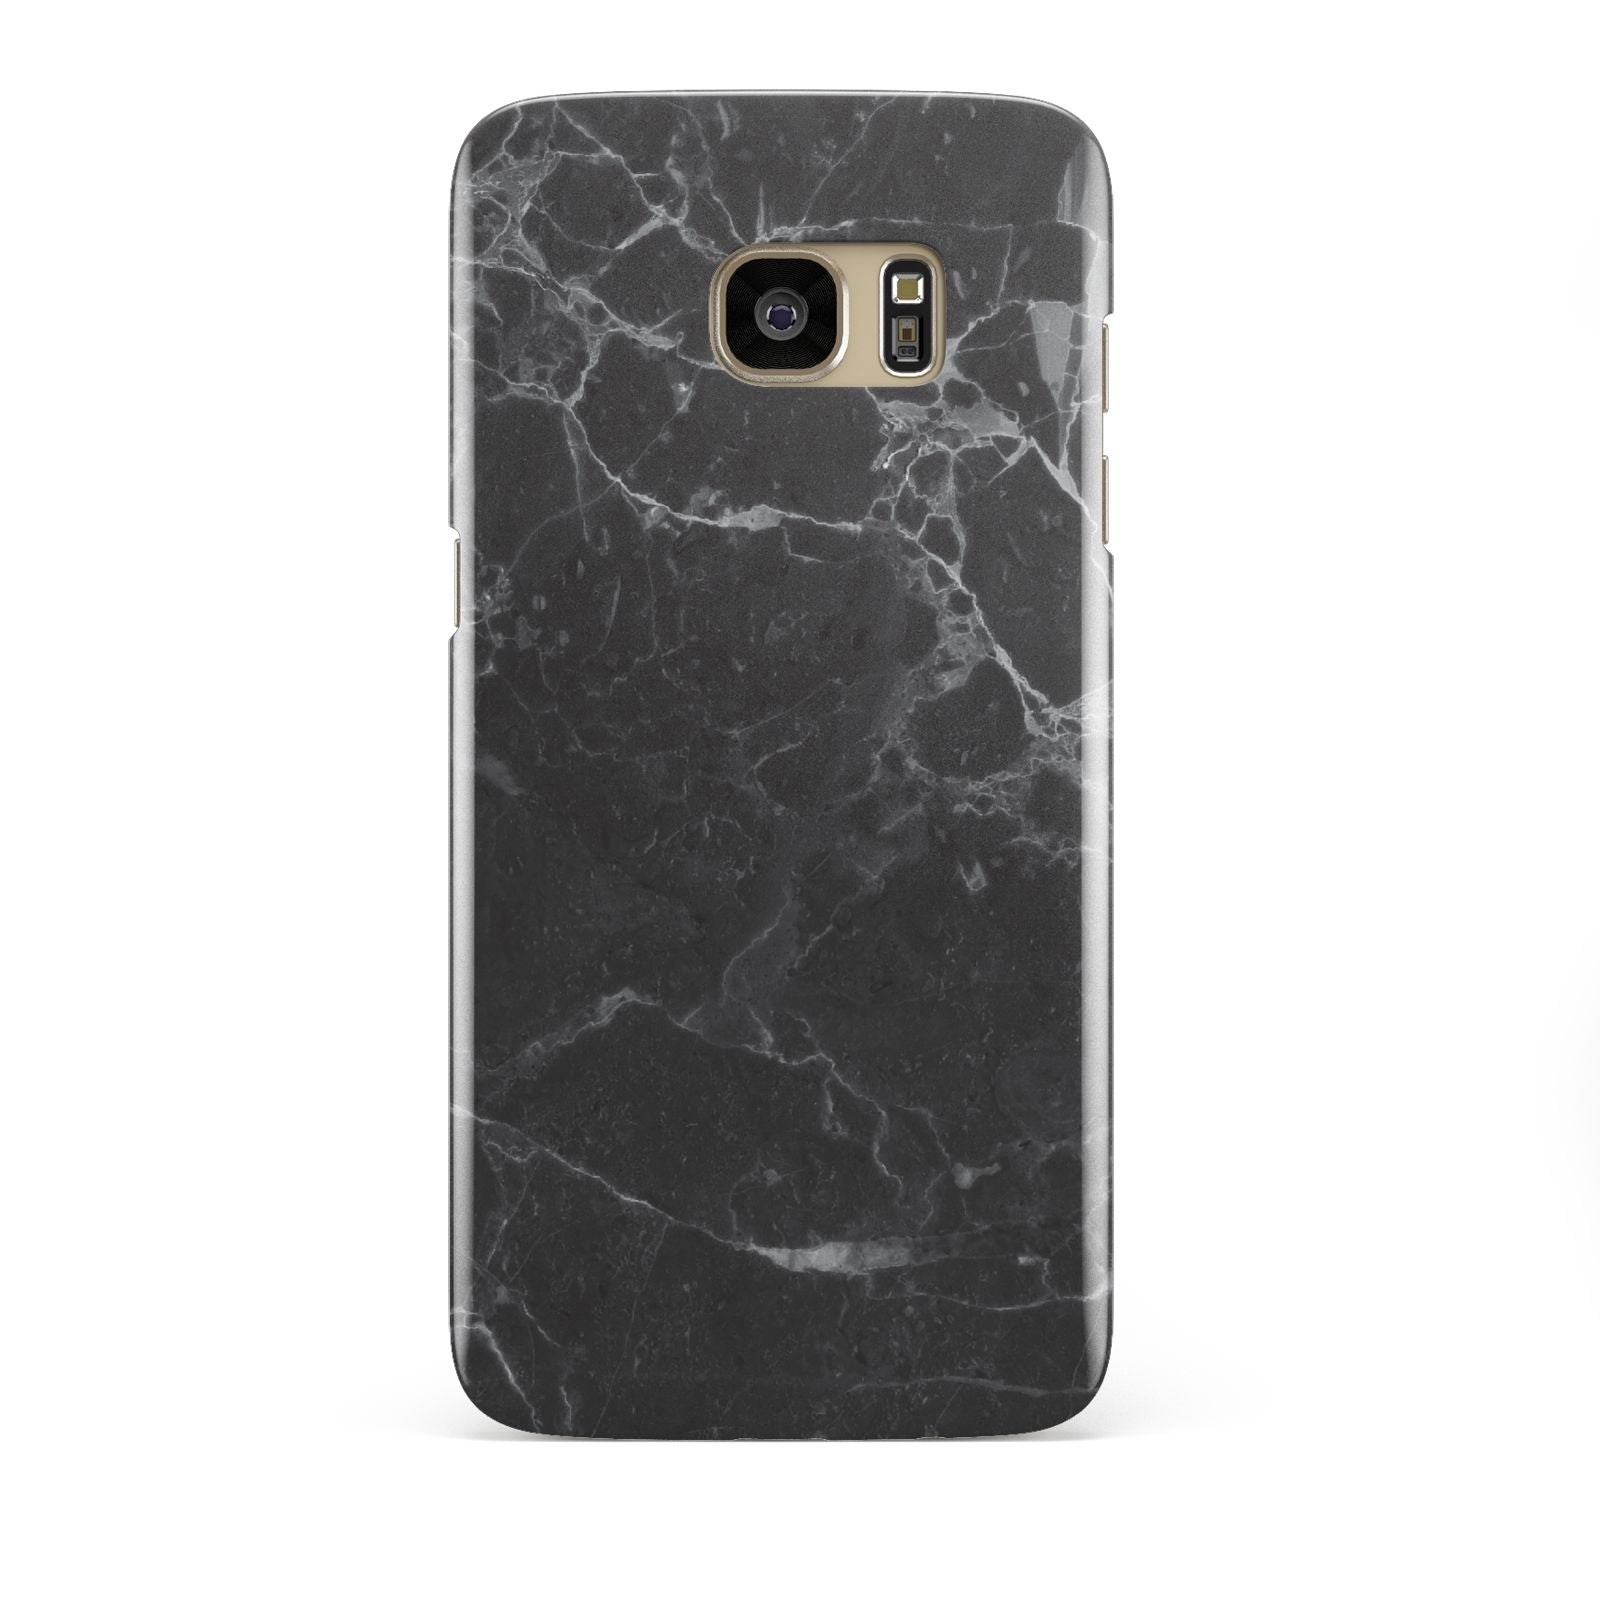 Faux Marble Effect Black Samsung Galaxy S7 Edge Case